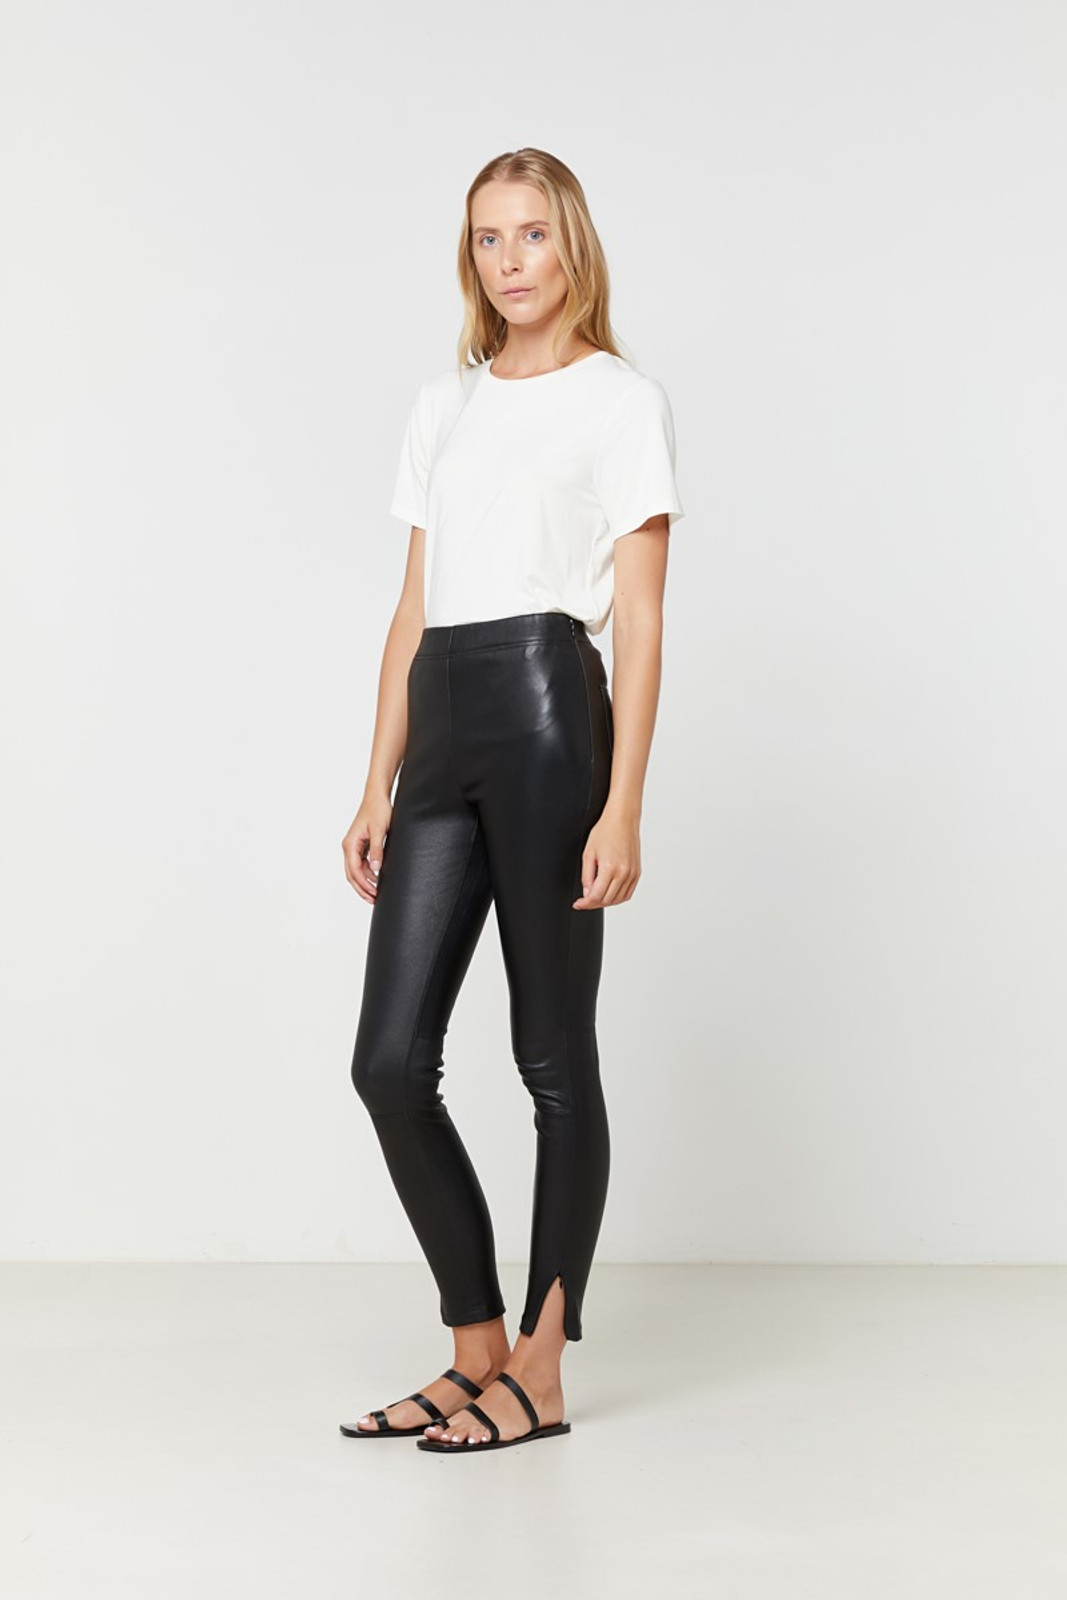 Elka Collective Rosa Leather Pant Black  2